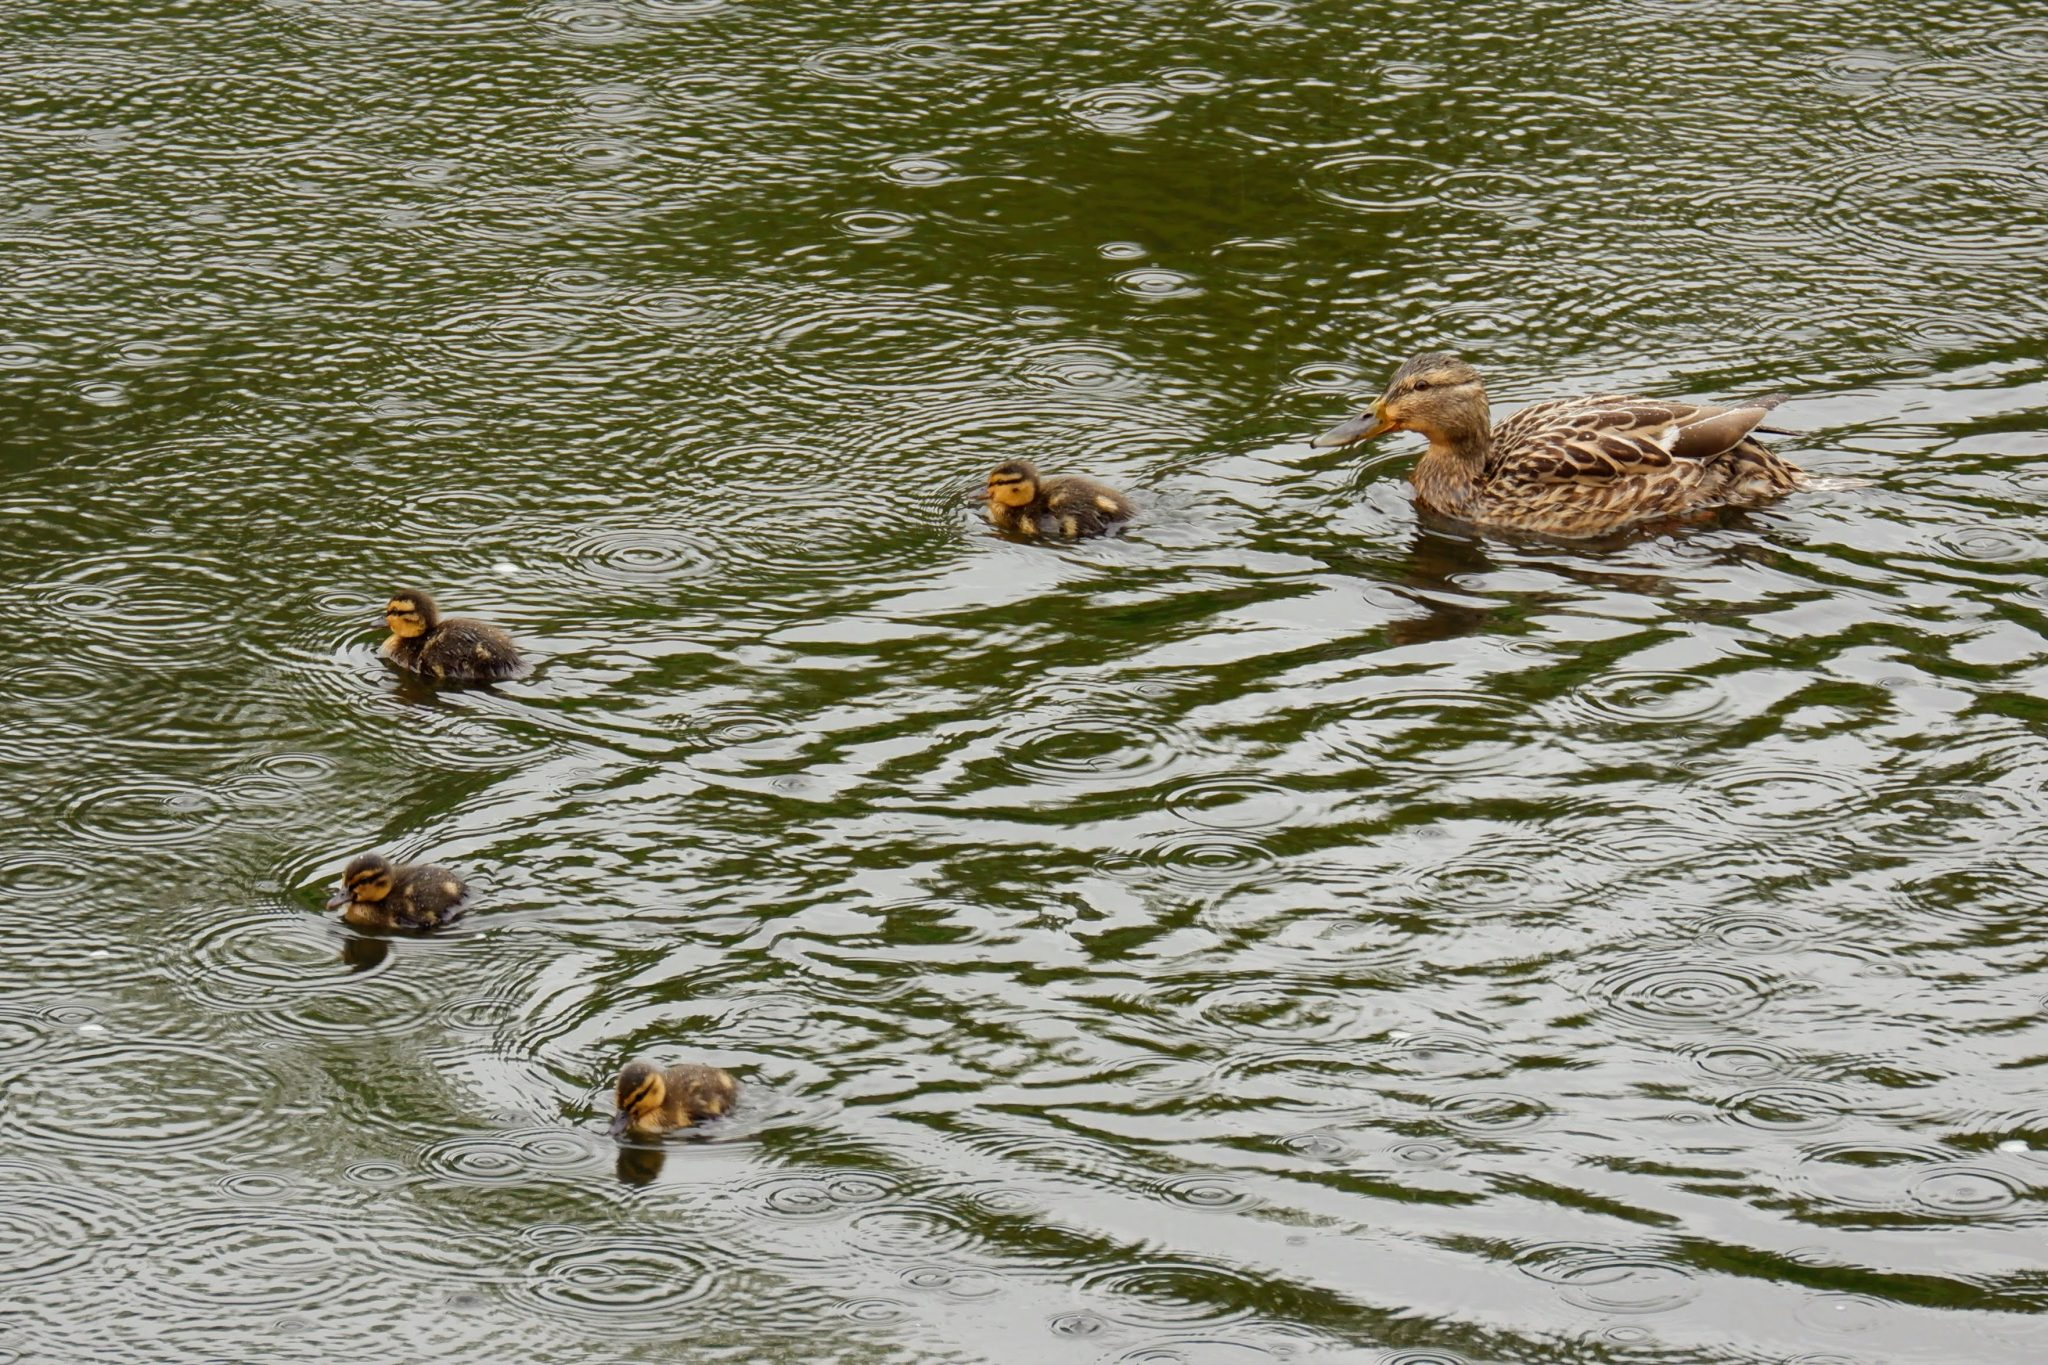 Mallard with ducklings, River Mersey in Chorlton